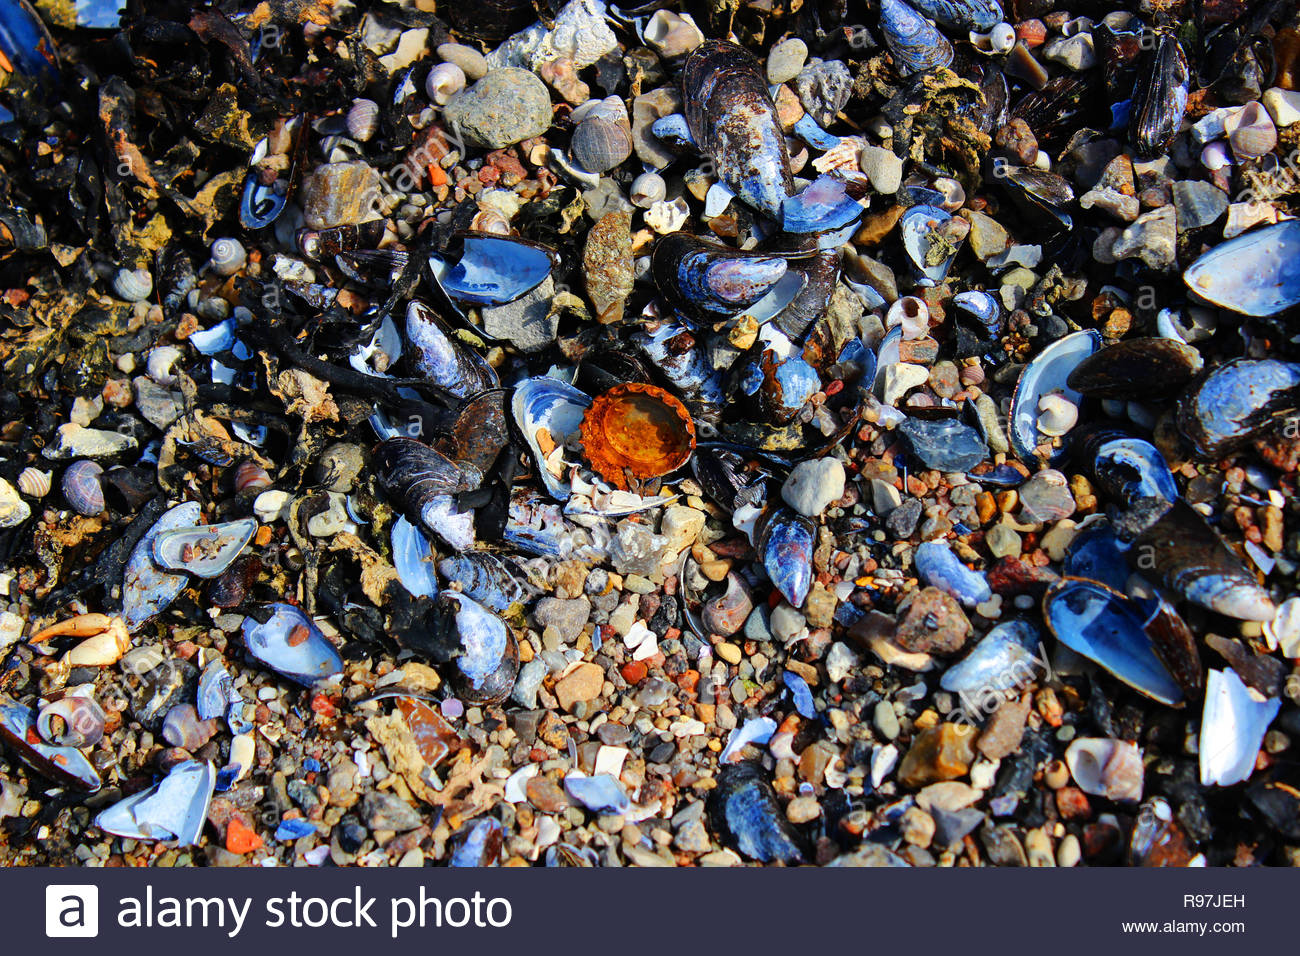 rusty bottle cap on the beach trash - Stock Image